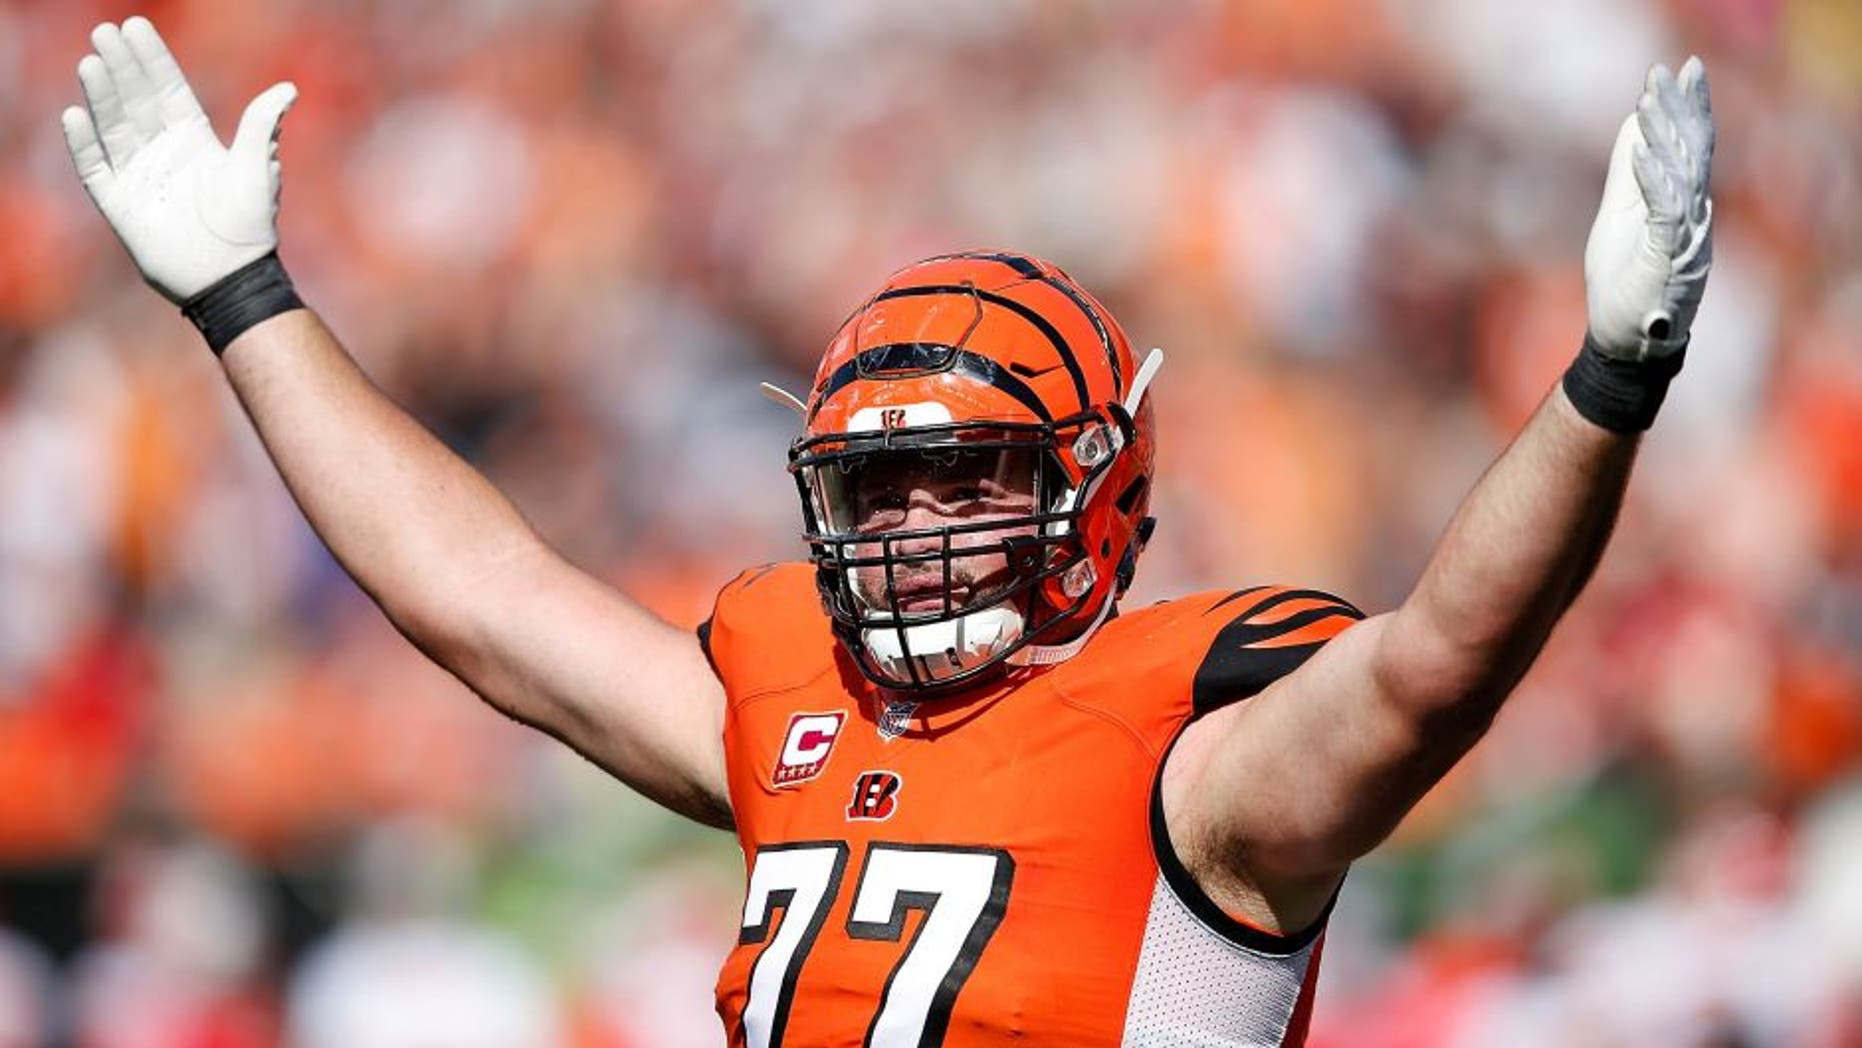 CINCINNATI, OH - OCTOBER 4: Andrew Whitworth #77 of the Cincinnati Bengals attempts to excite the crowd during the third quarter of the game against the Kansas City Chiefs at Paul Brown Stadium on October 4, 2015 in Cincinnati, Ohio. (Photo by Joe Robbins/Getty Images)